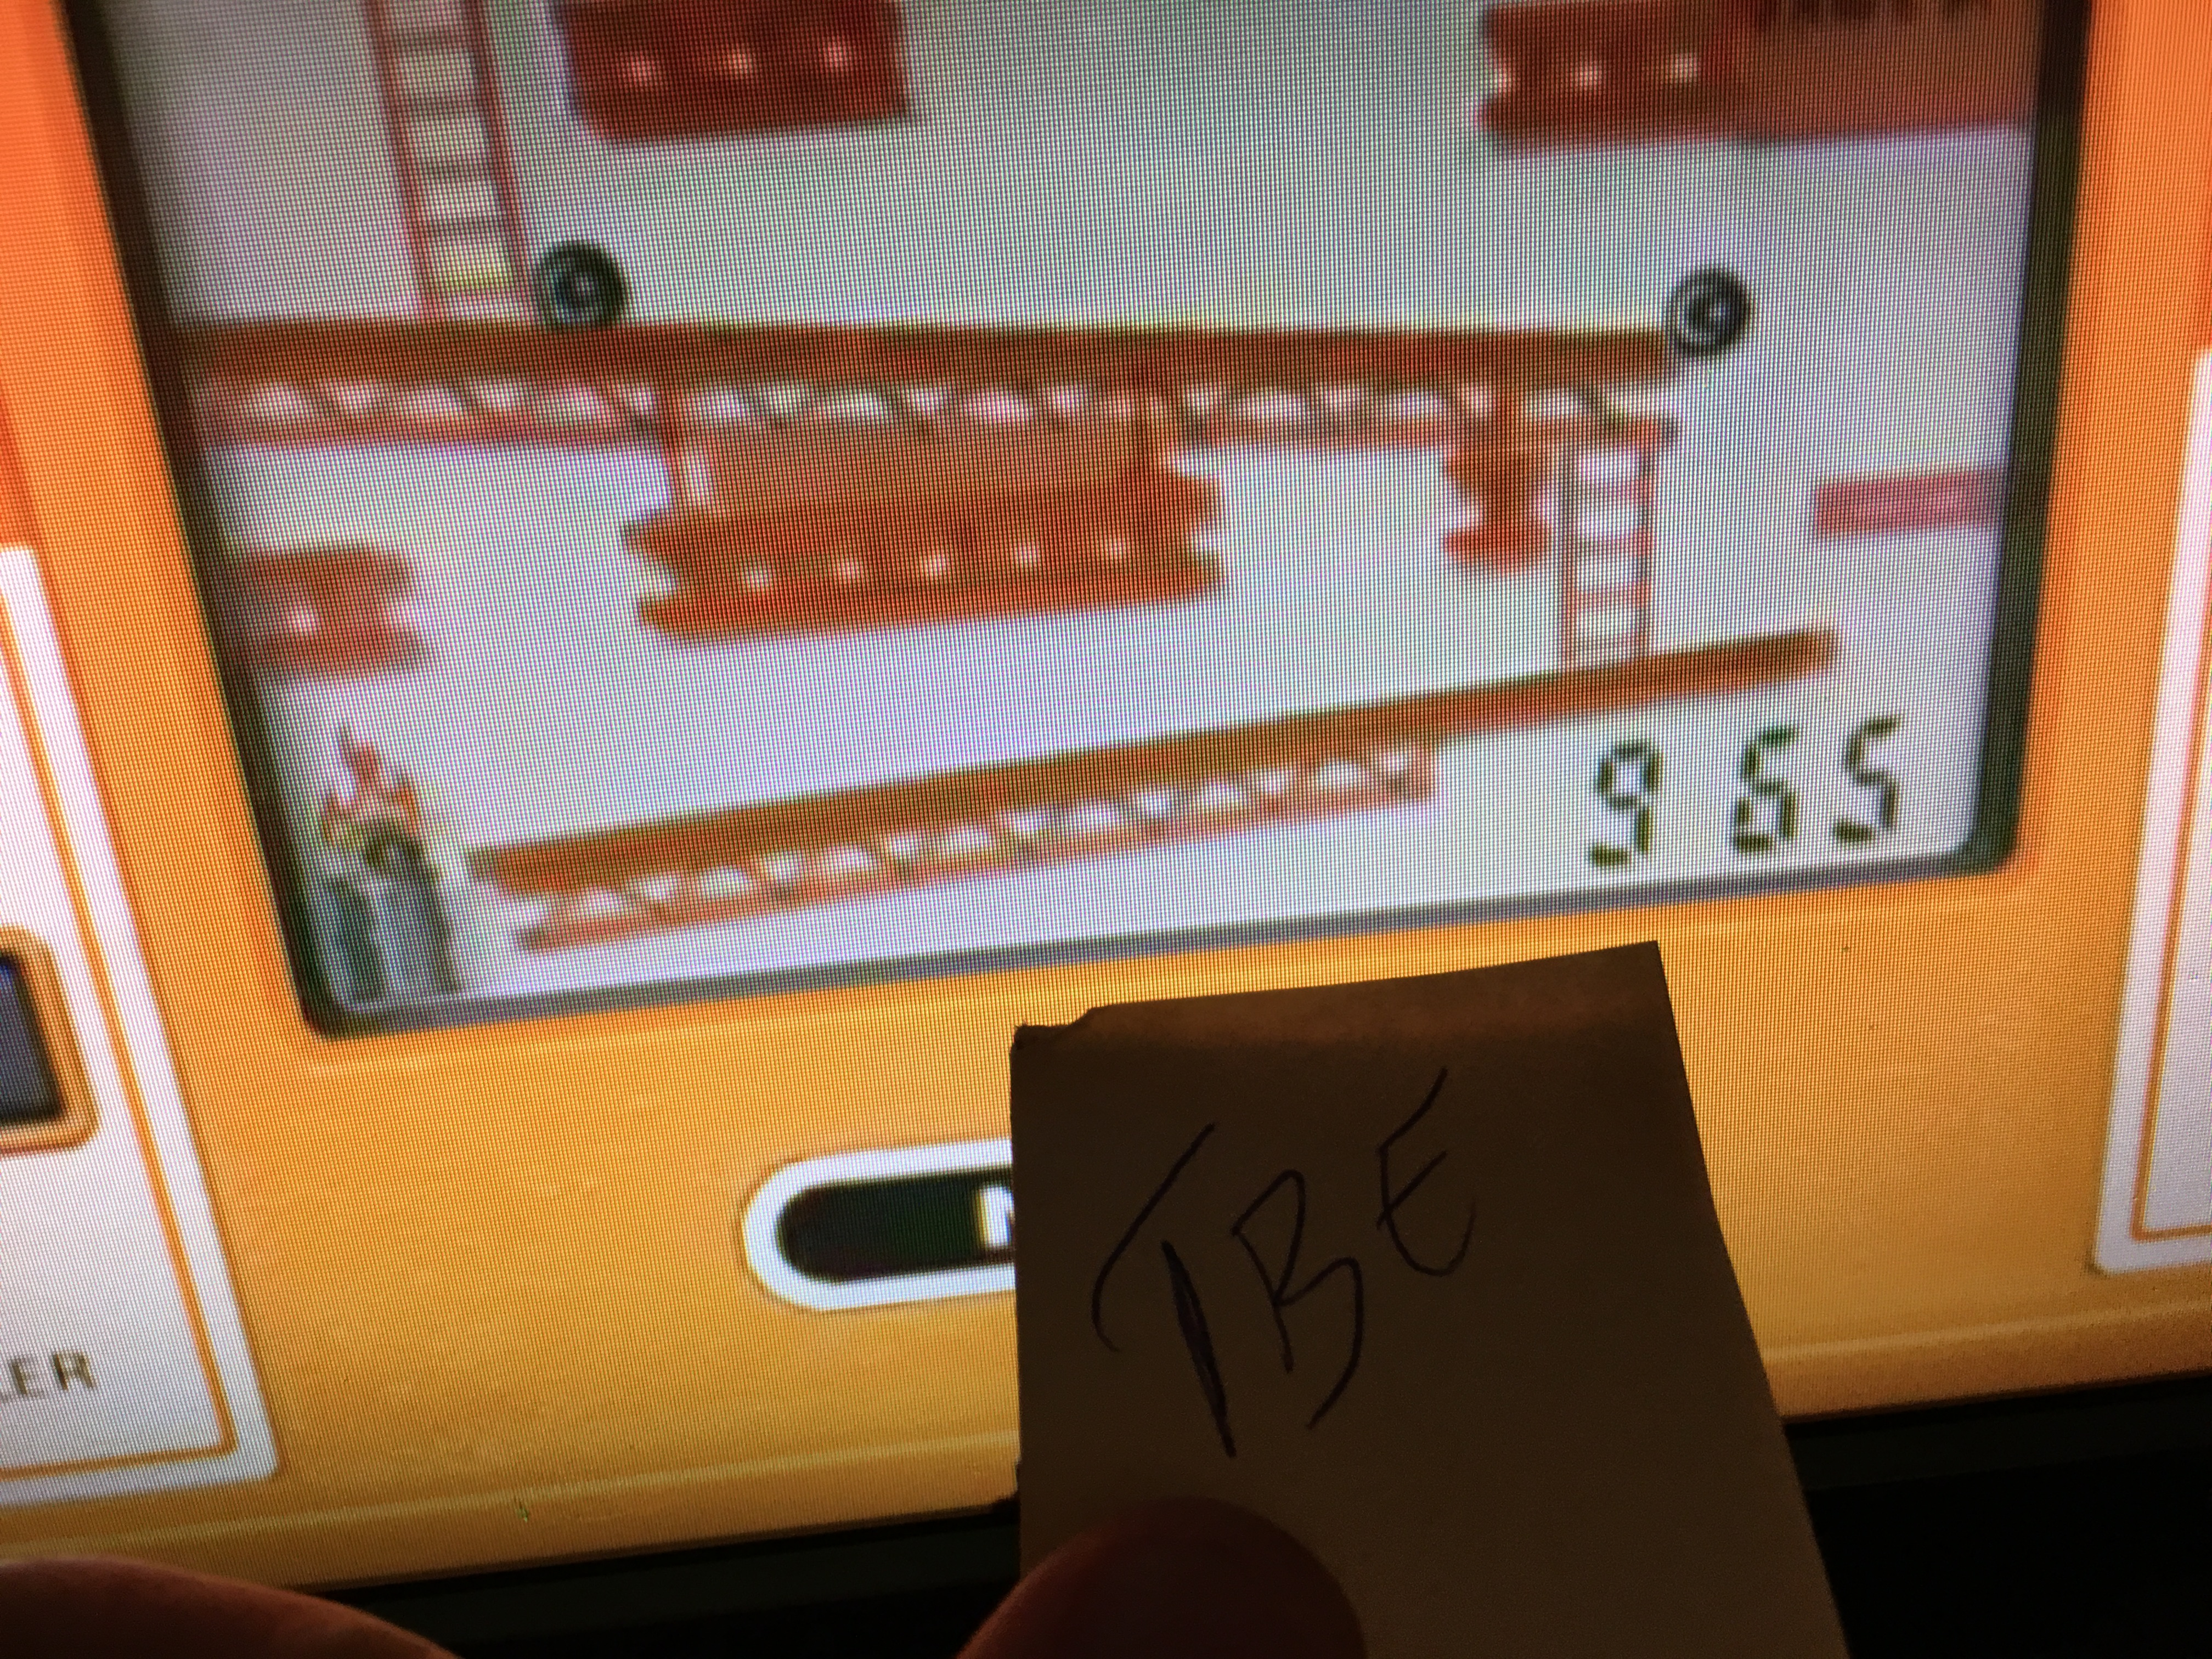 Sixx: Game and Watch: Donkey Kong (Dedicated Handheld Emulated) 965 points on 2016-04-30 15:49:04